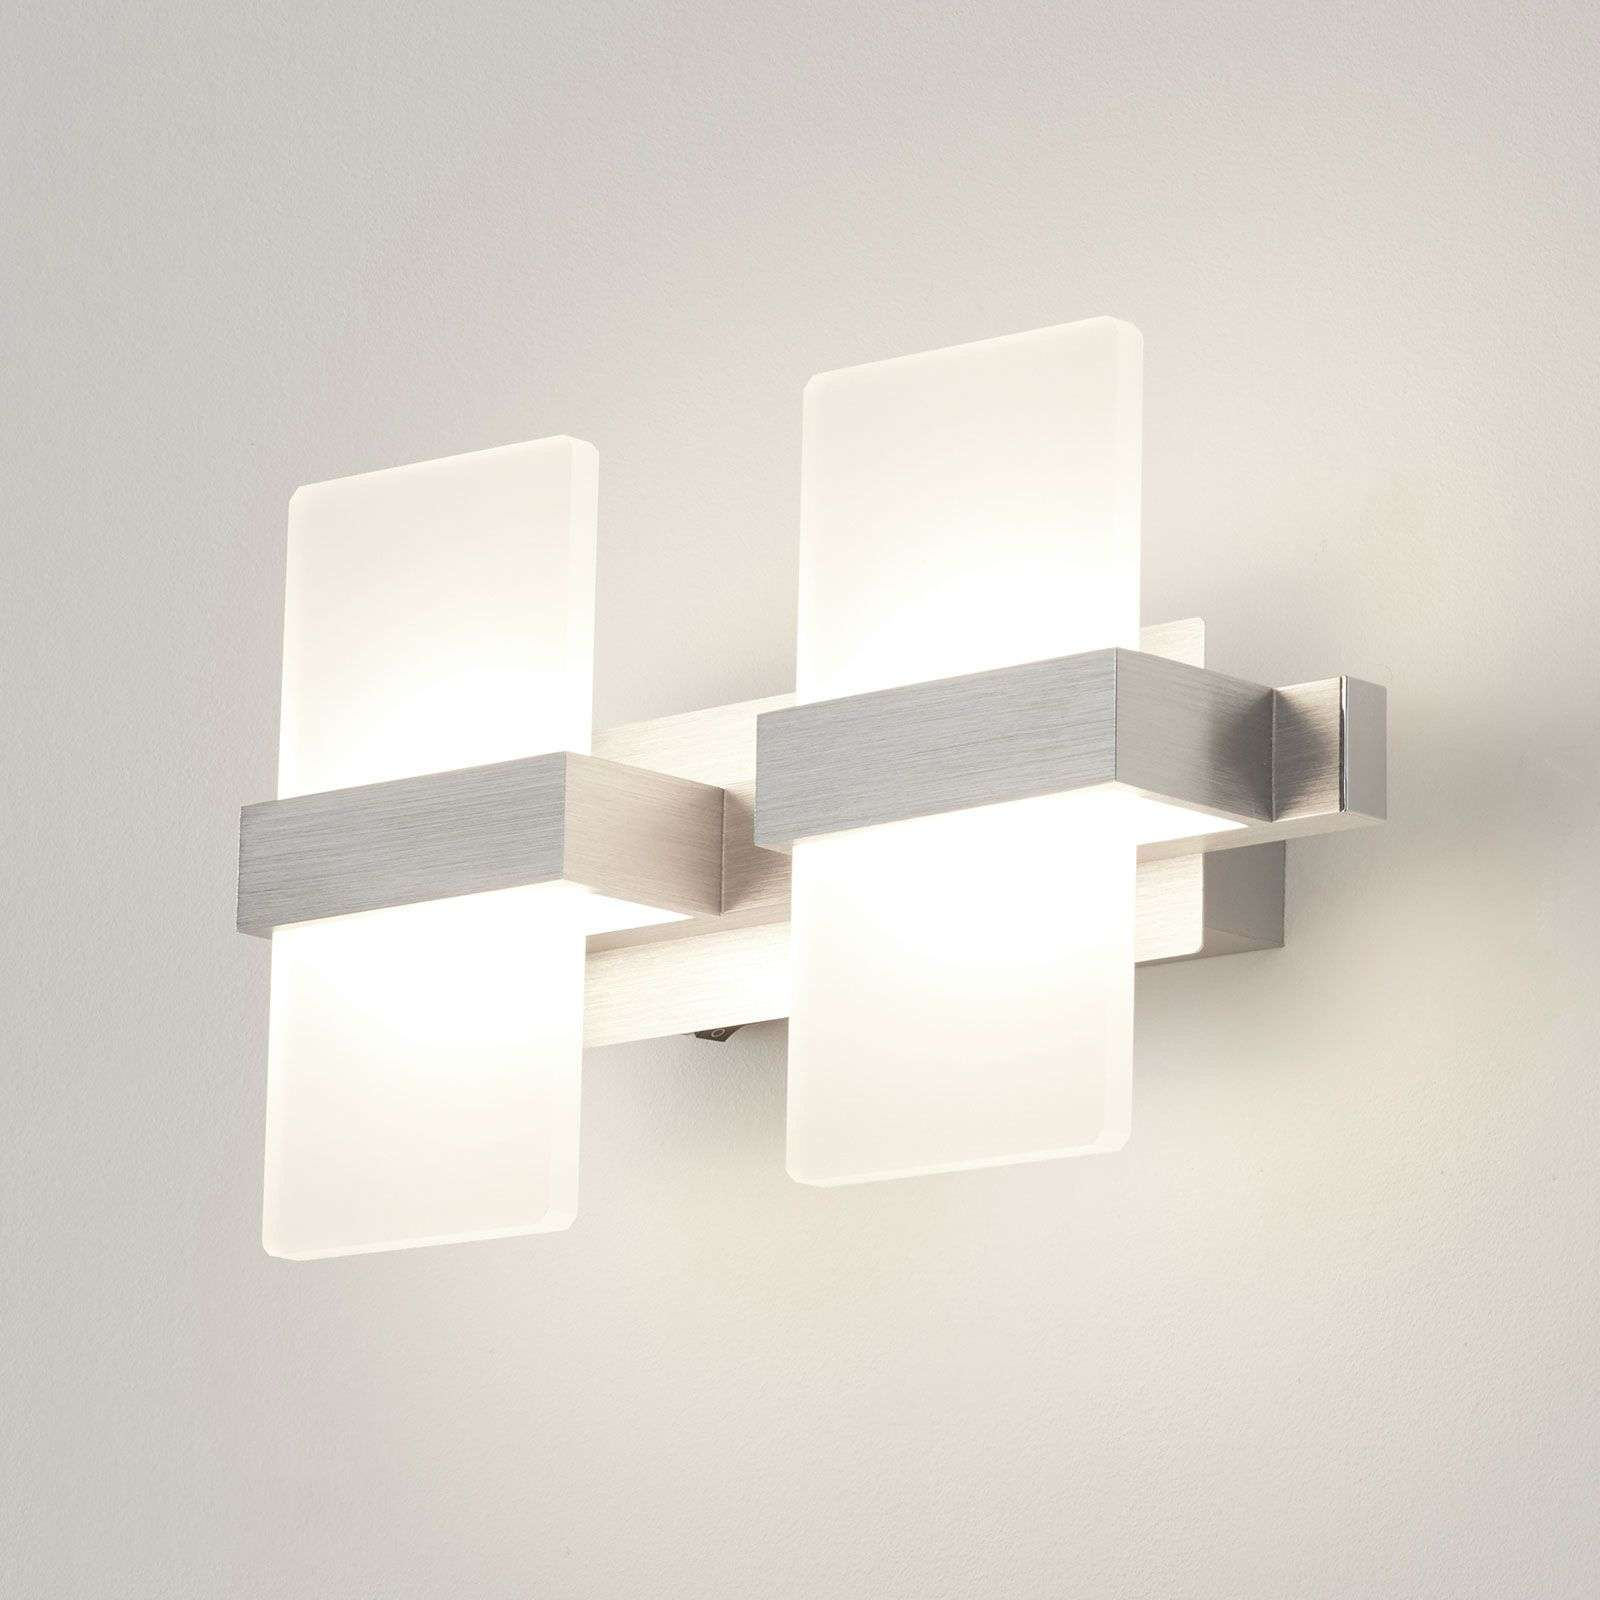 Lámpara de pared LED Platon moderna, 2 brazos